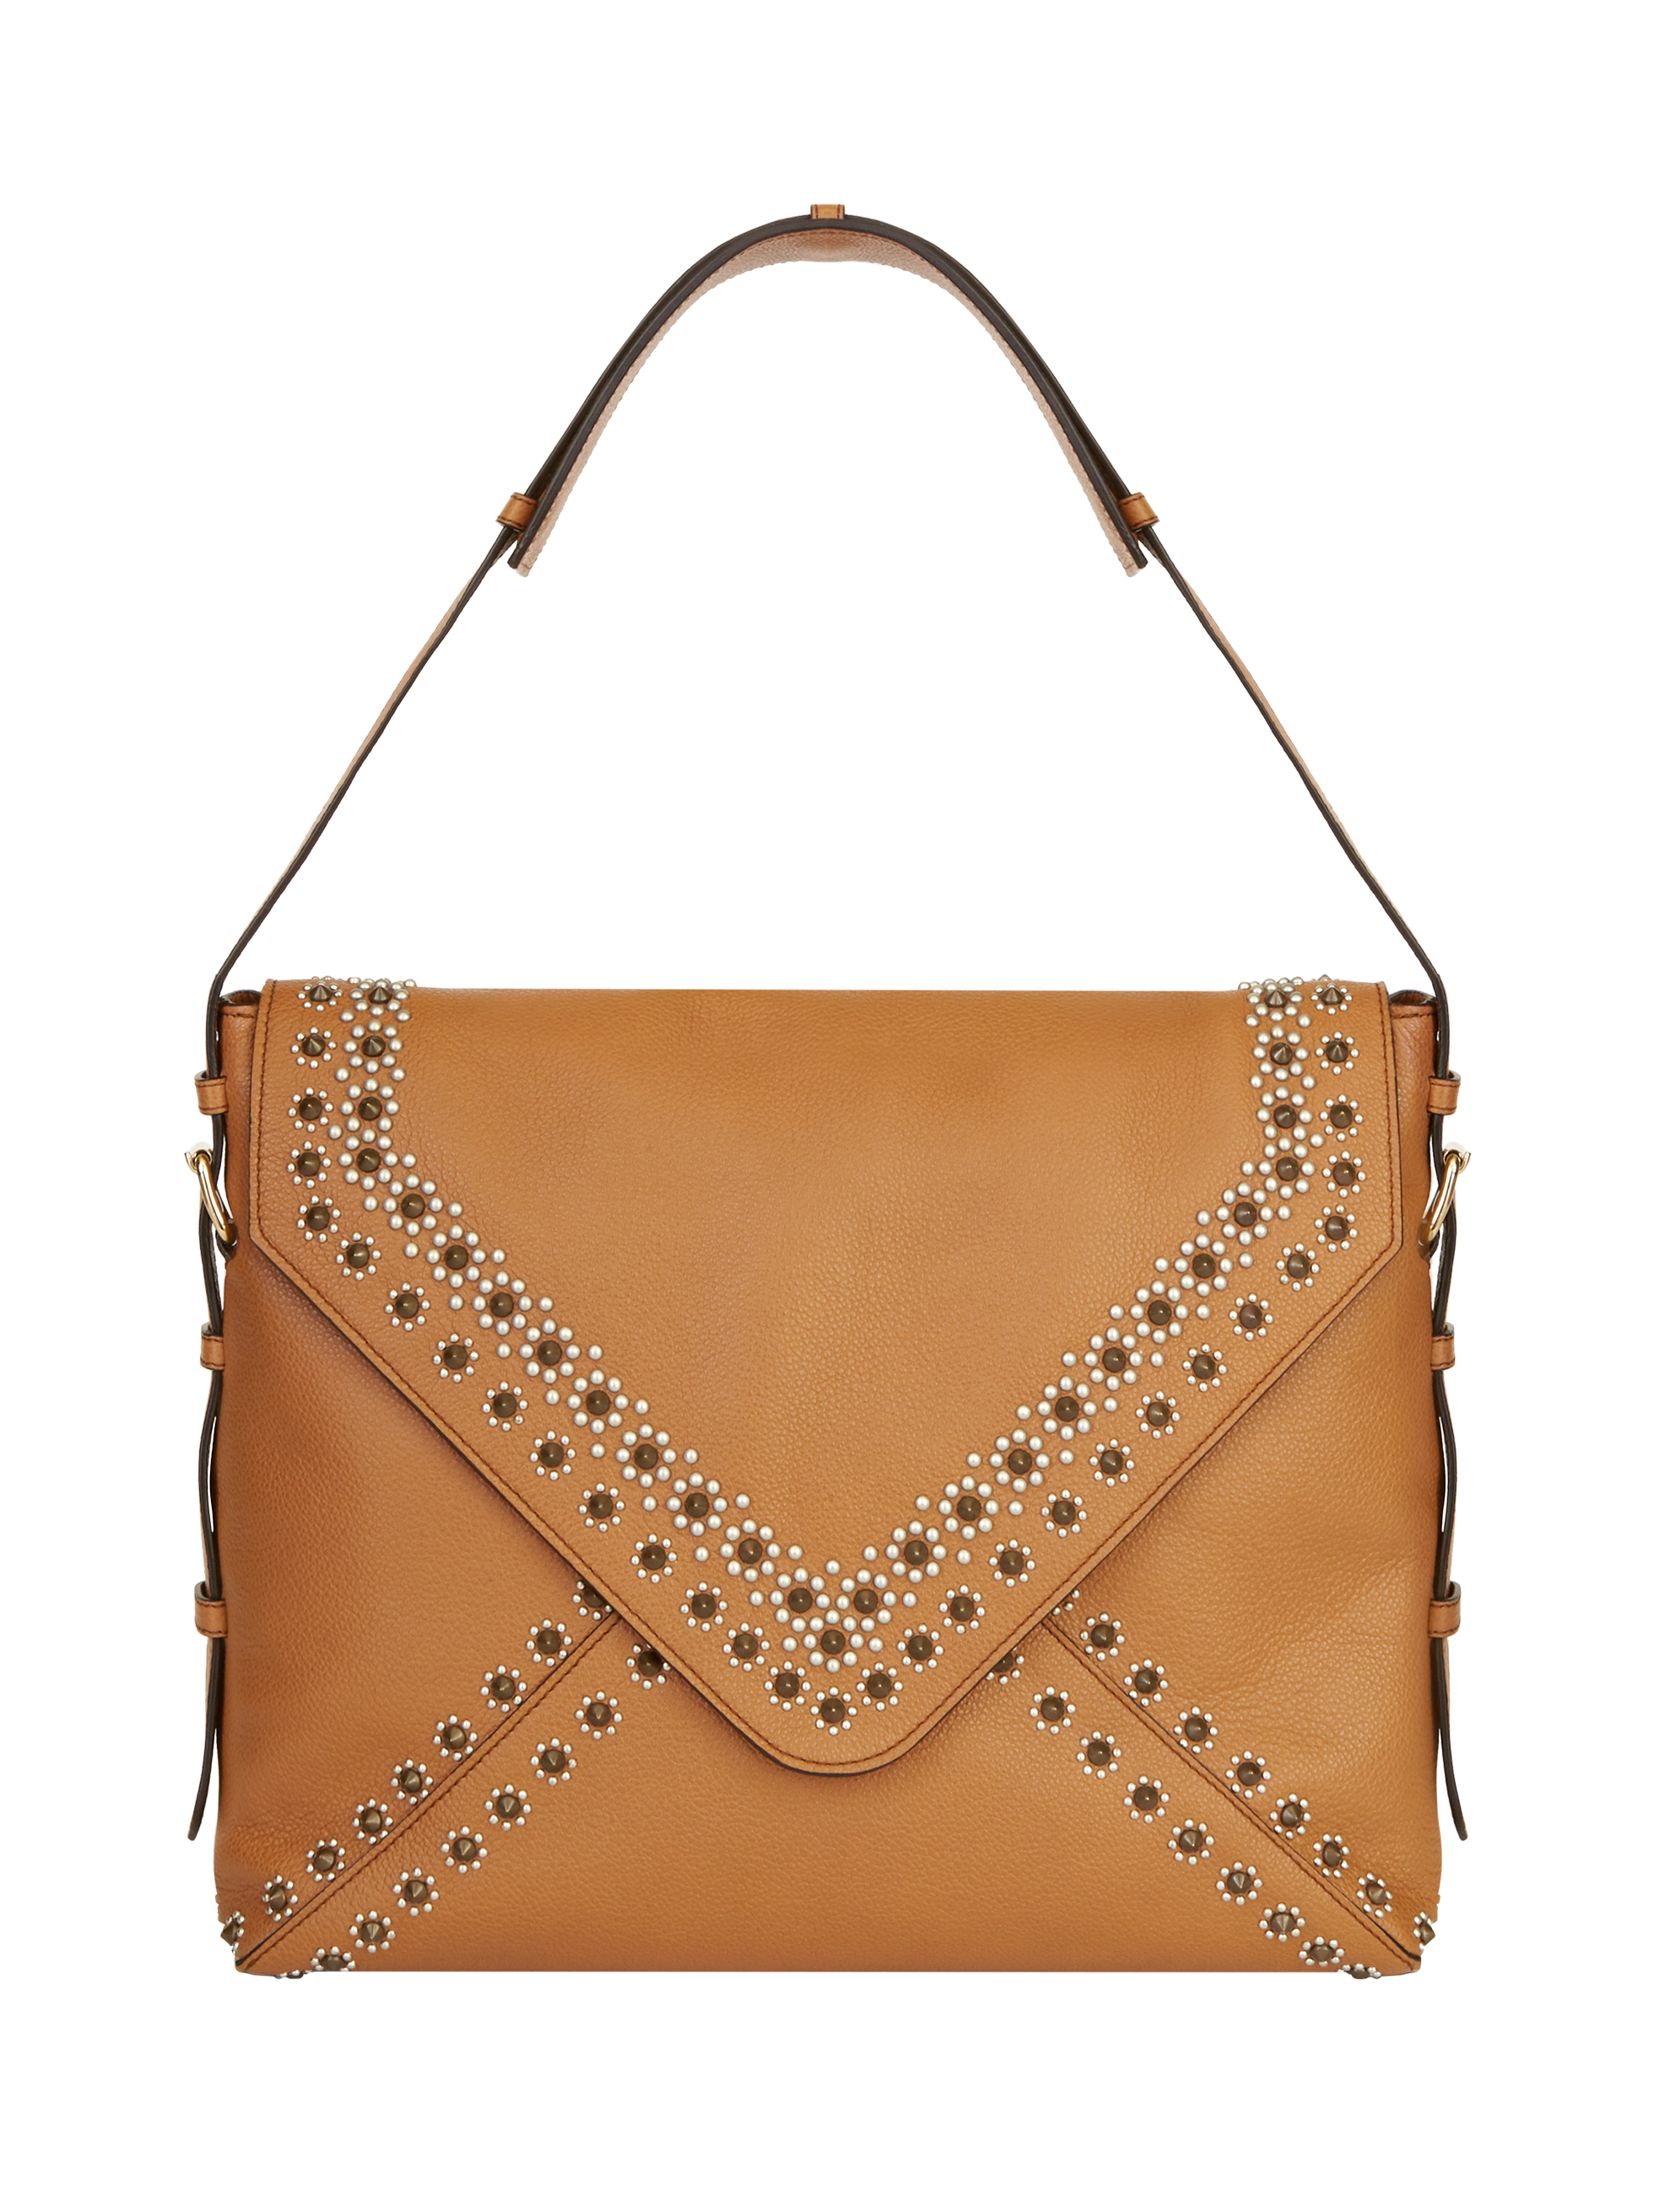 GOA BAG WITH LEATHER STUDS